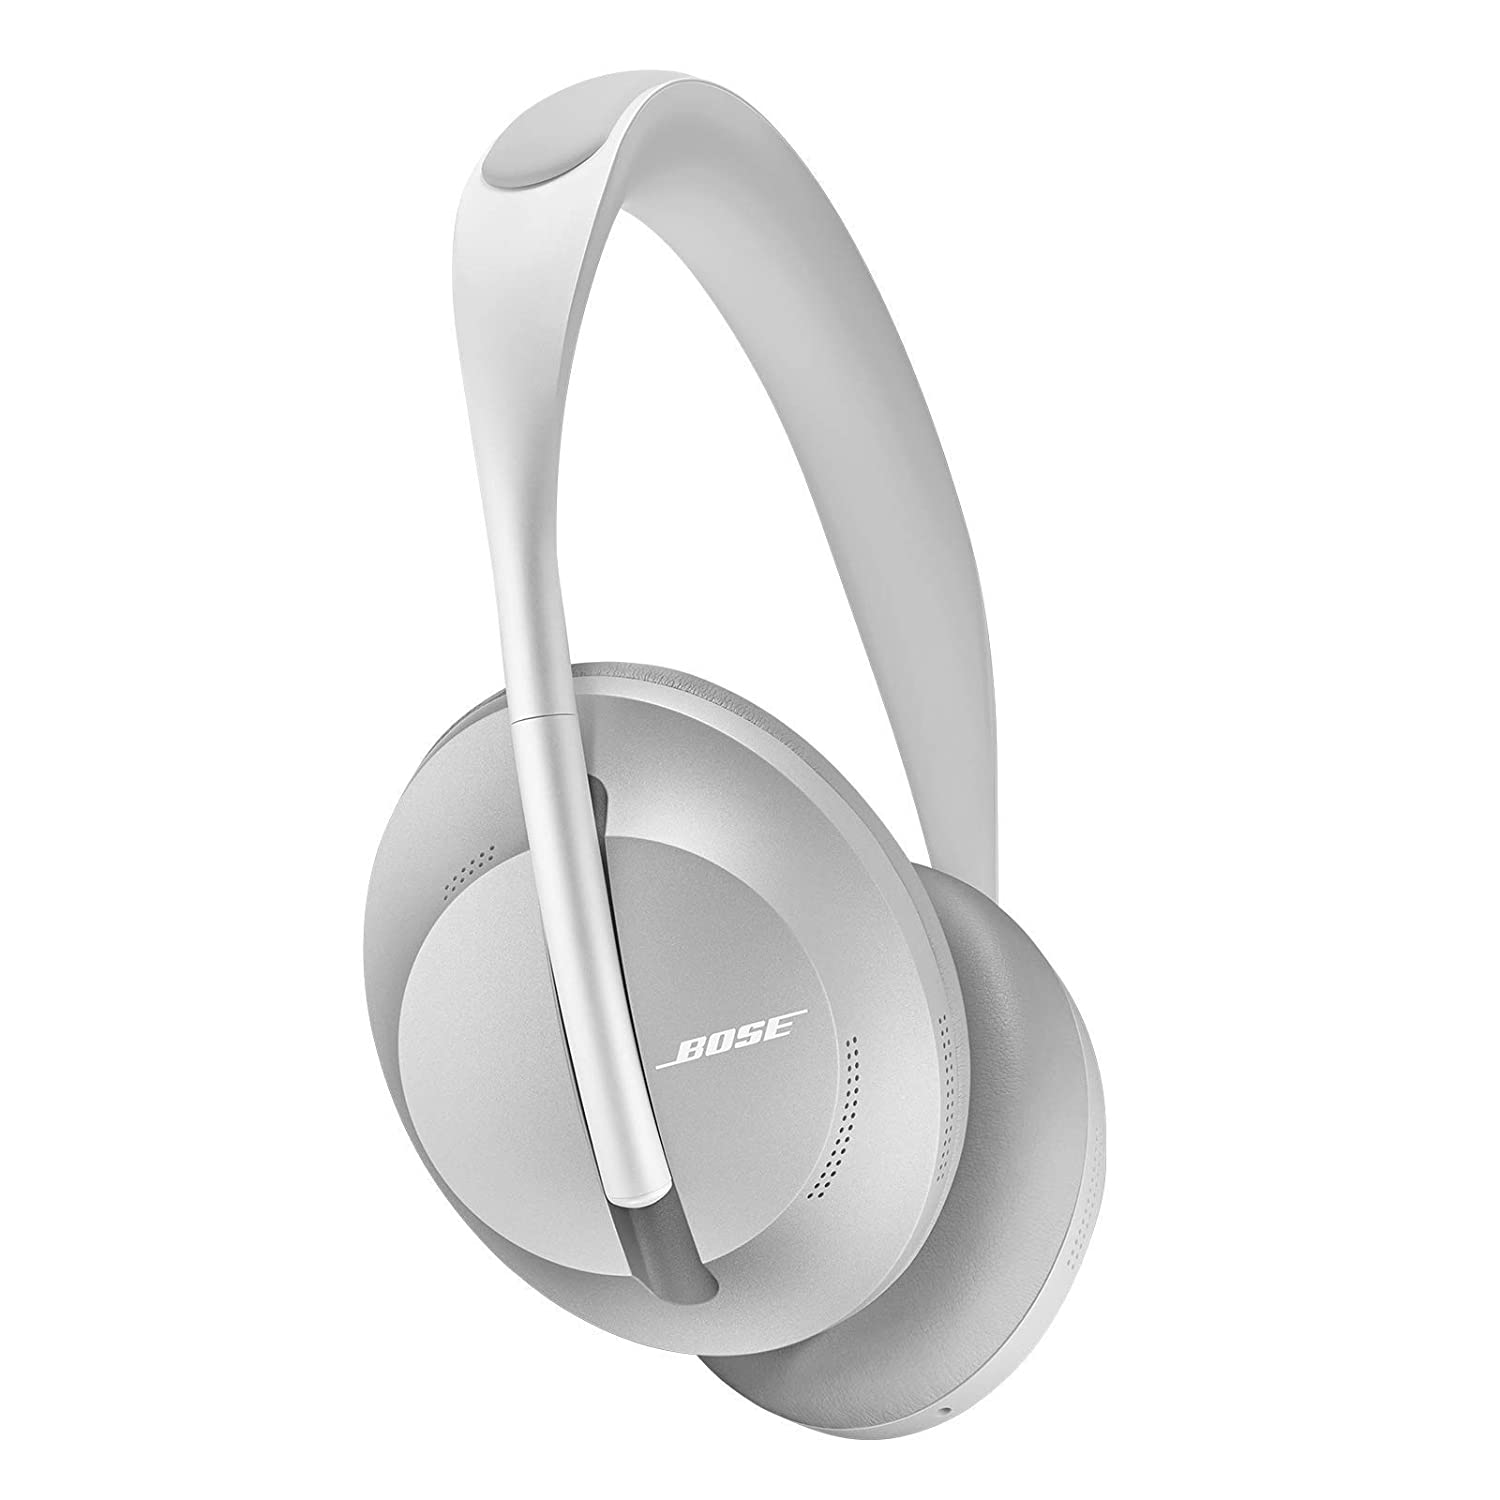 Bose Noise Cancelling Wireless Bluetooth Headphones 700, with Alexa Voice Control, Silver (Renewed)